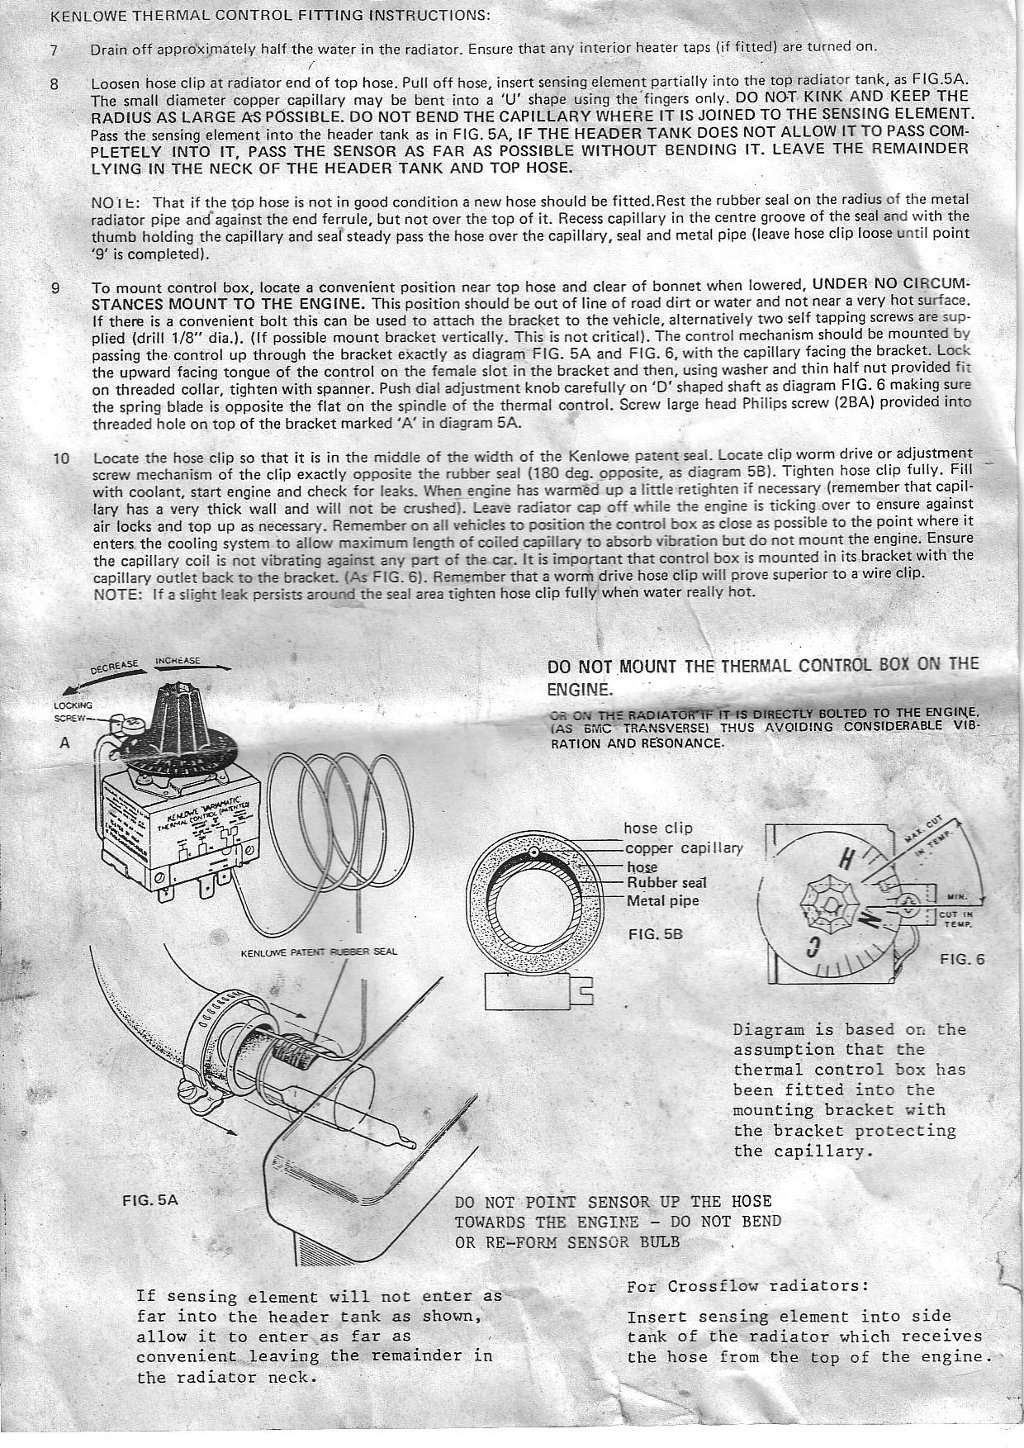 Kenlowe Fan Wiring Diagram 26 Images Automotive Electric A Slimline Cliosport Net At